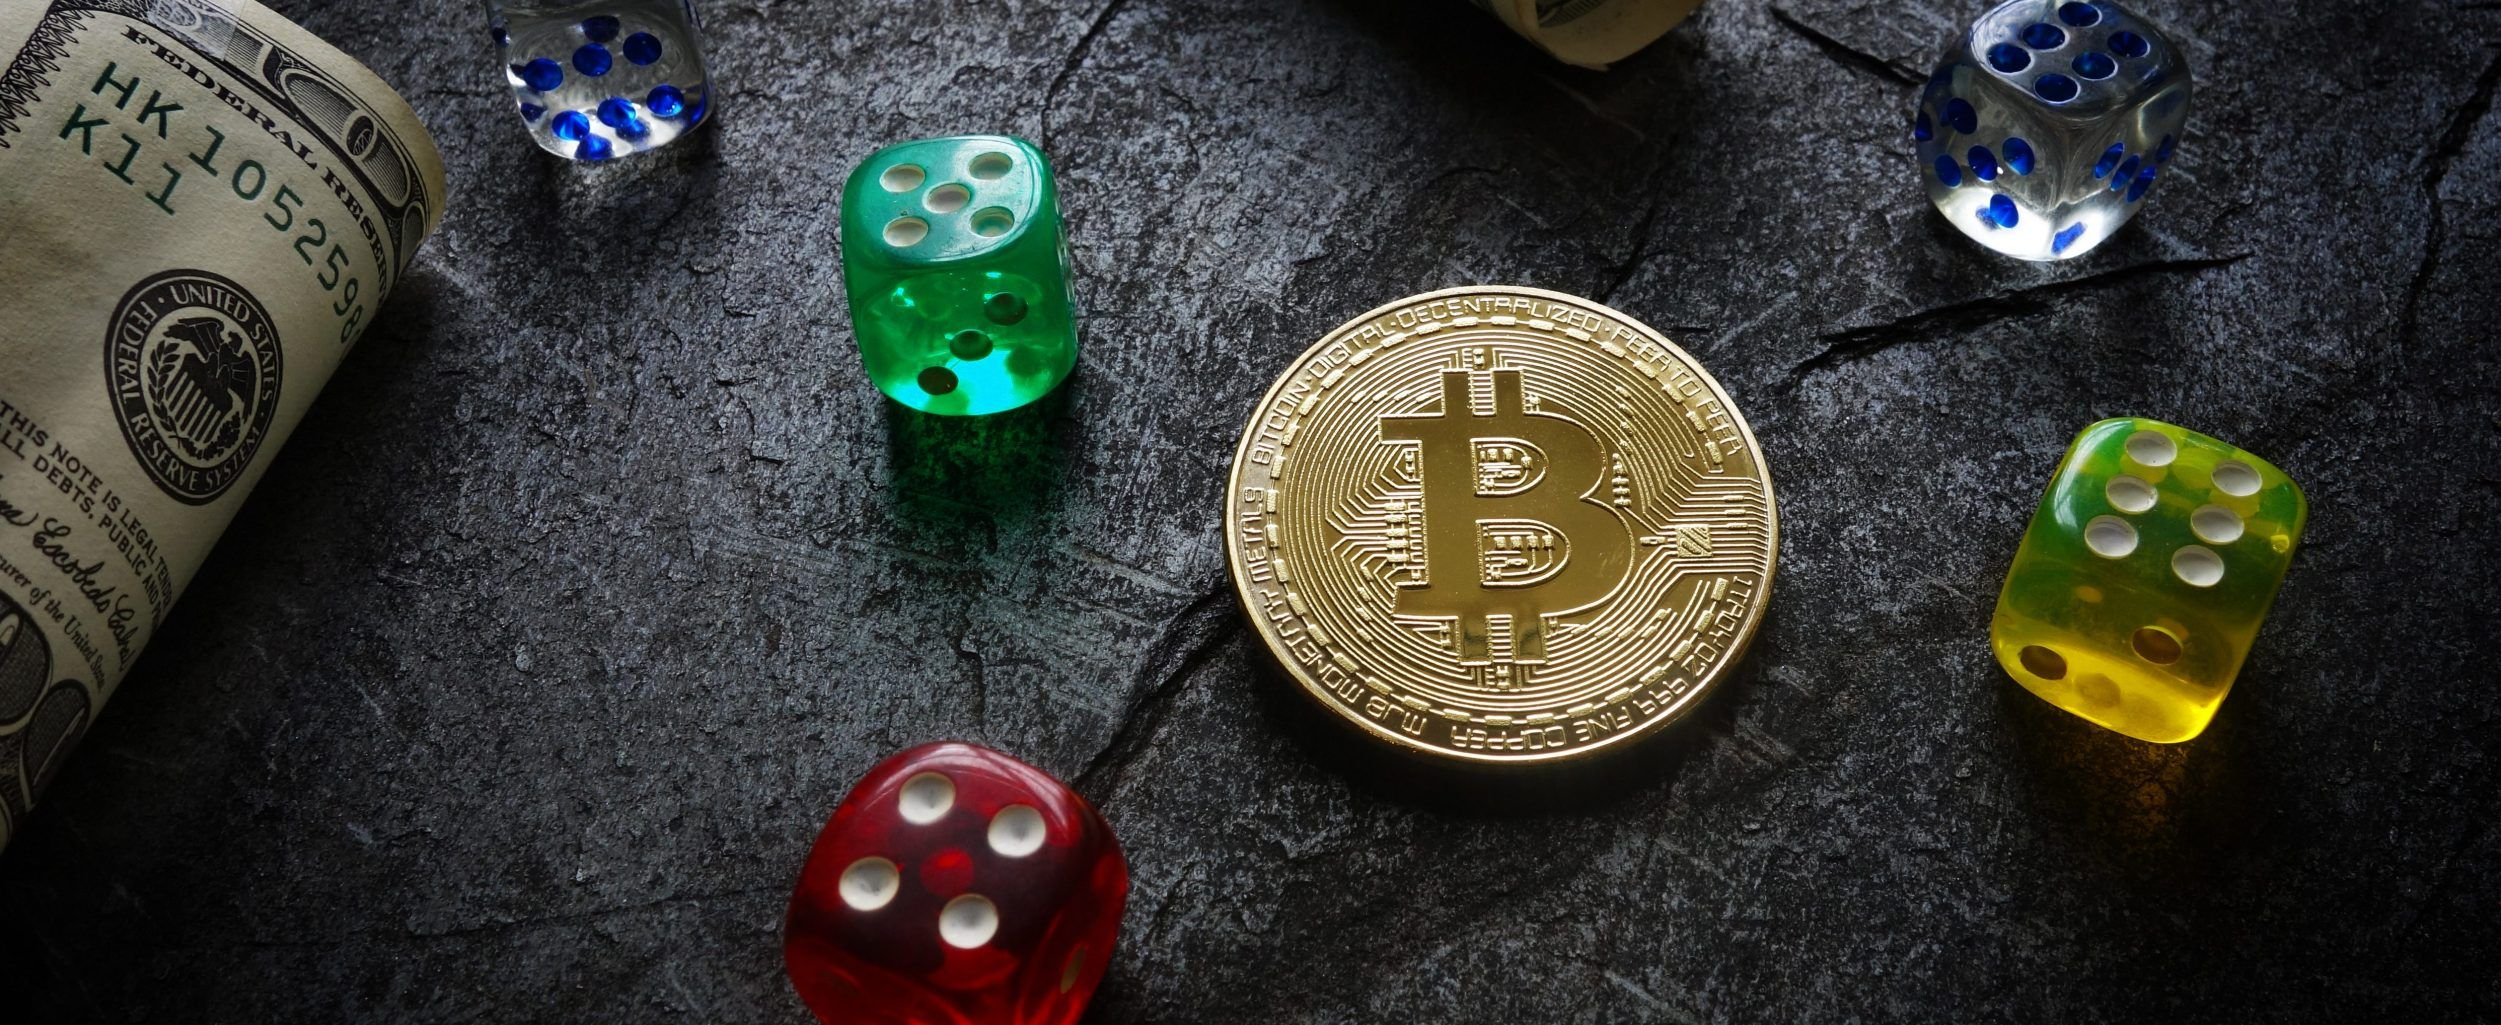 Online Betting: How to Use Cryptos